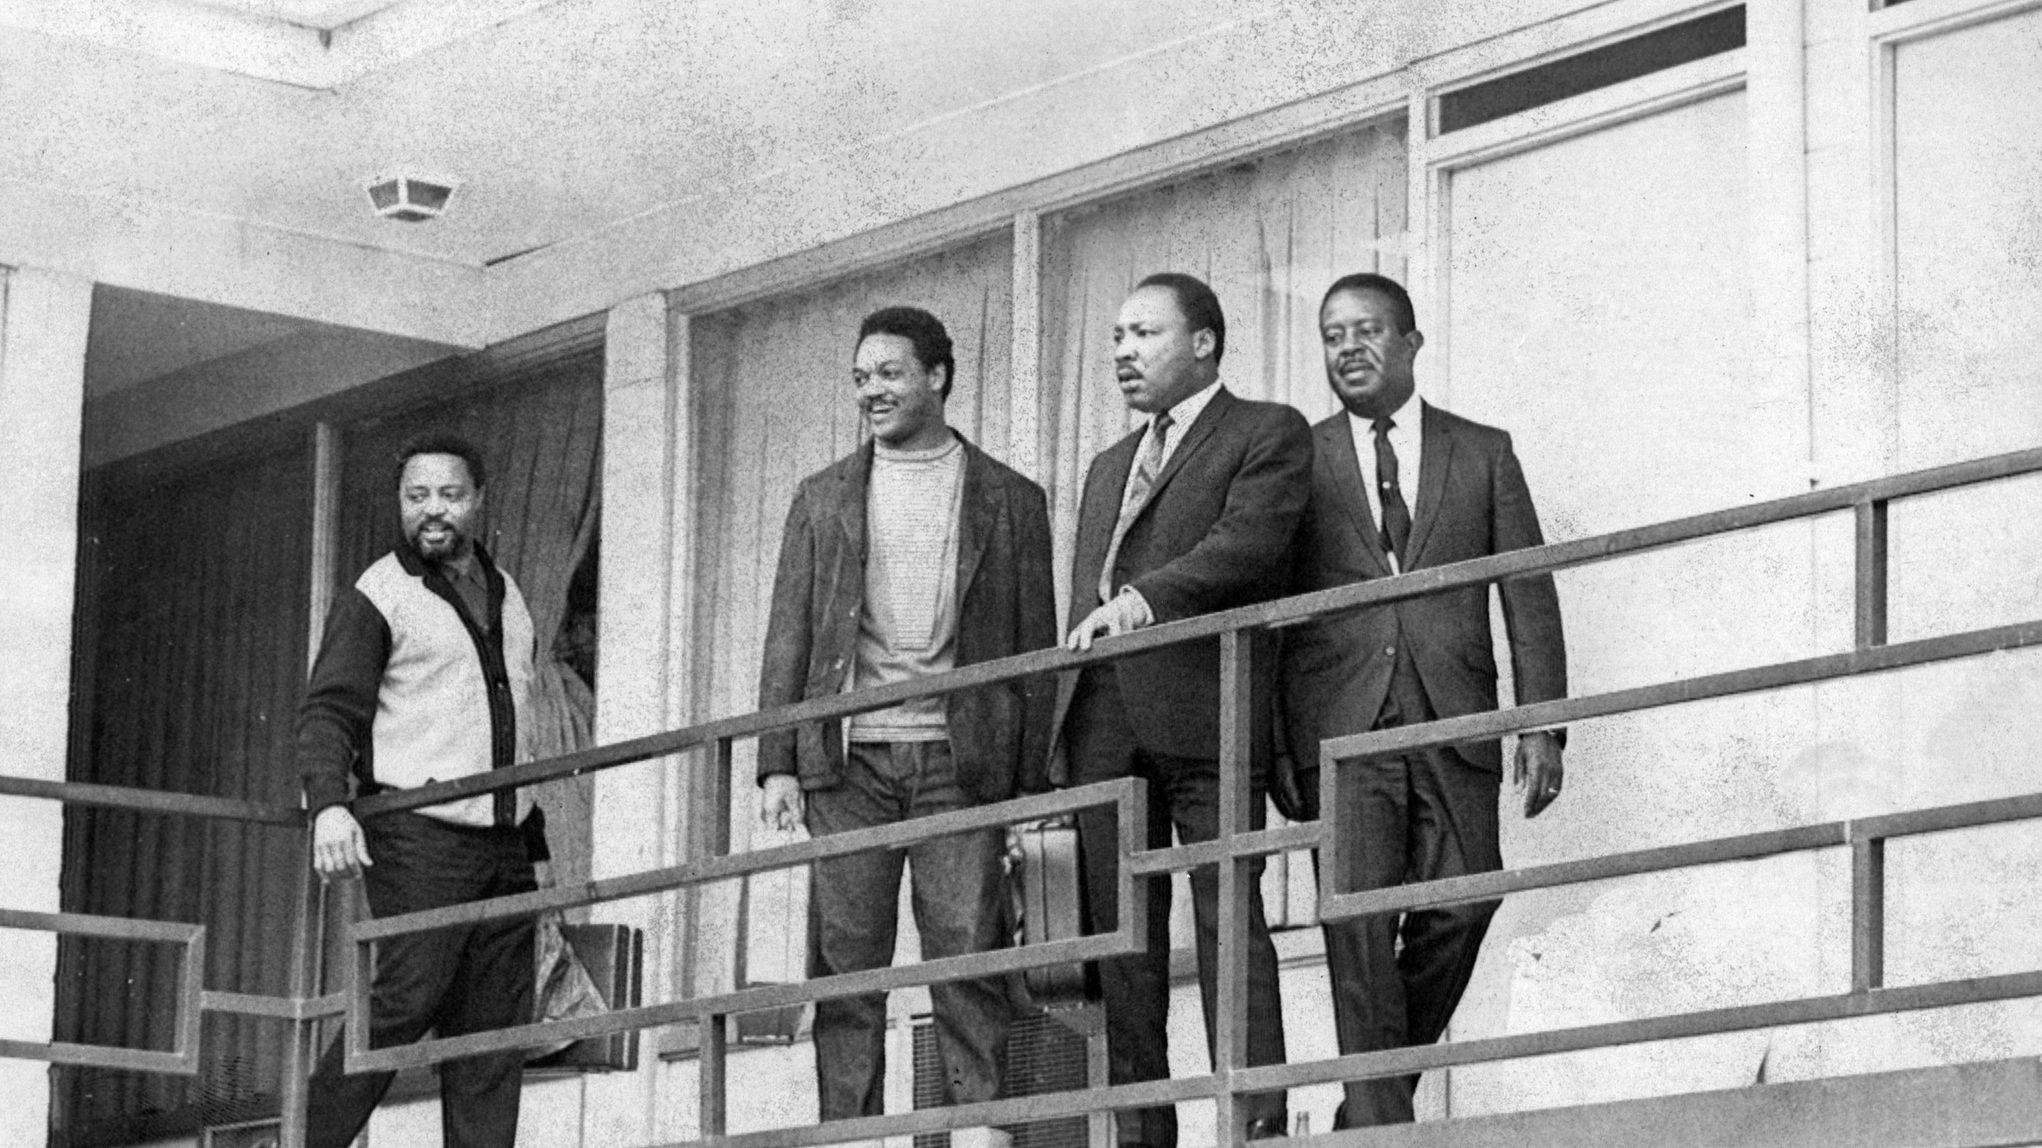 4/5/68--Rev. Martin Luther King Jr. stands on the balcony of the Memphis motel at approximately the